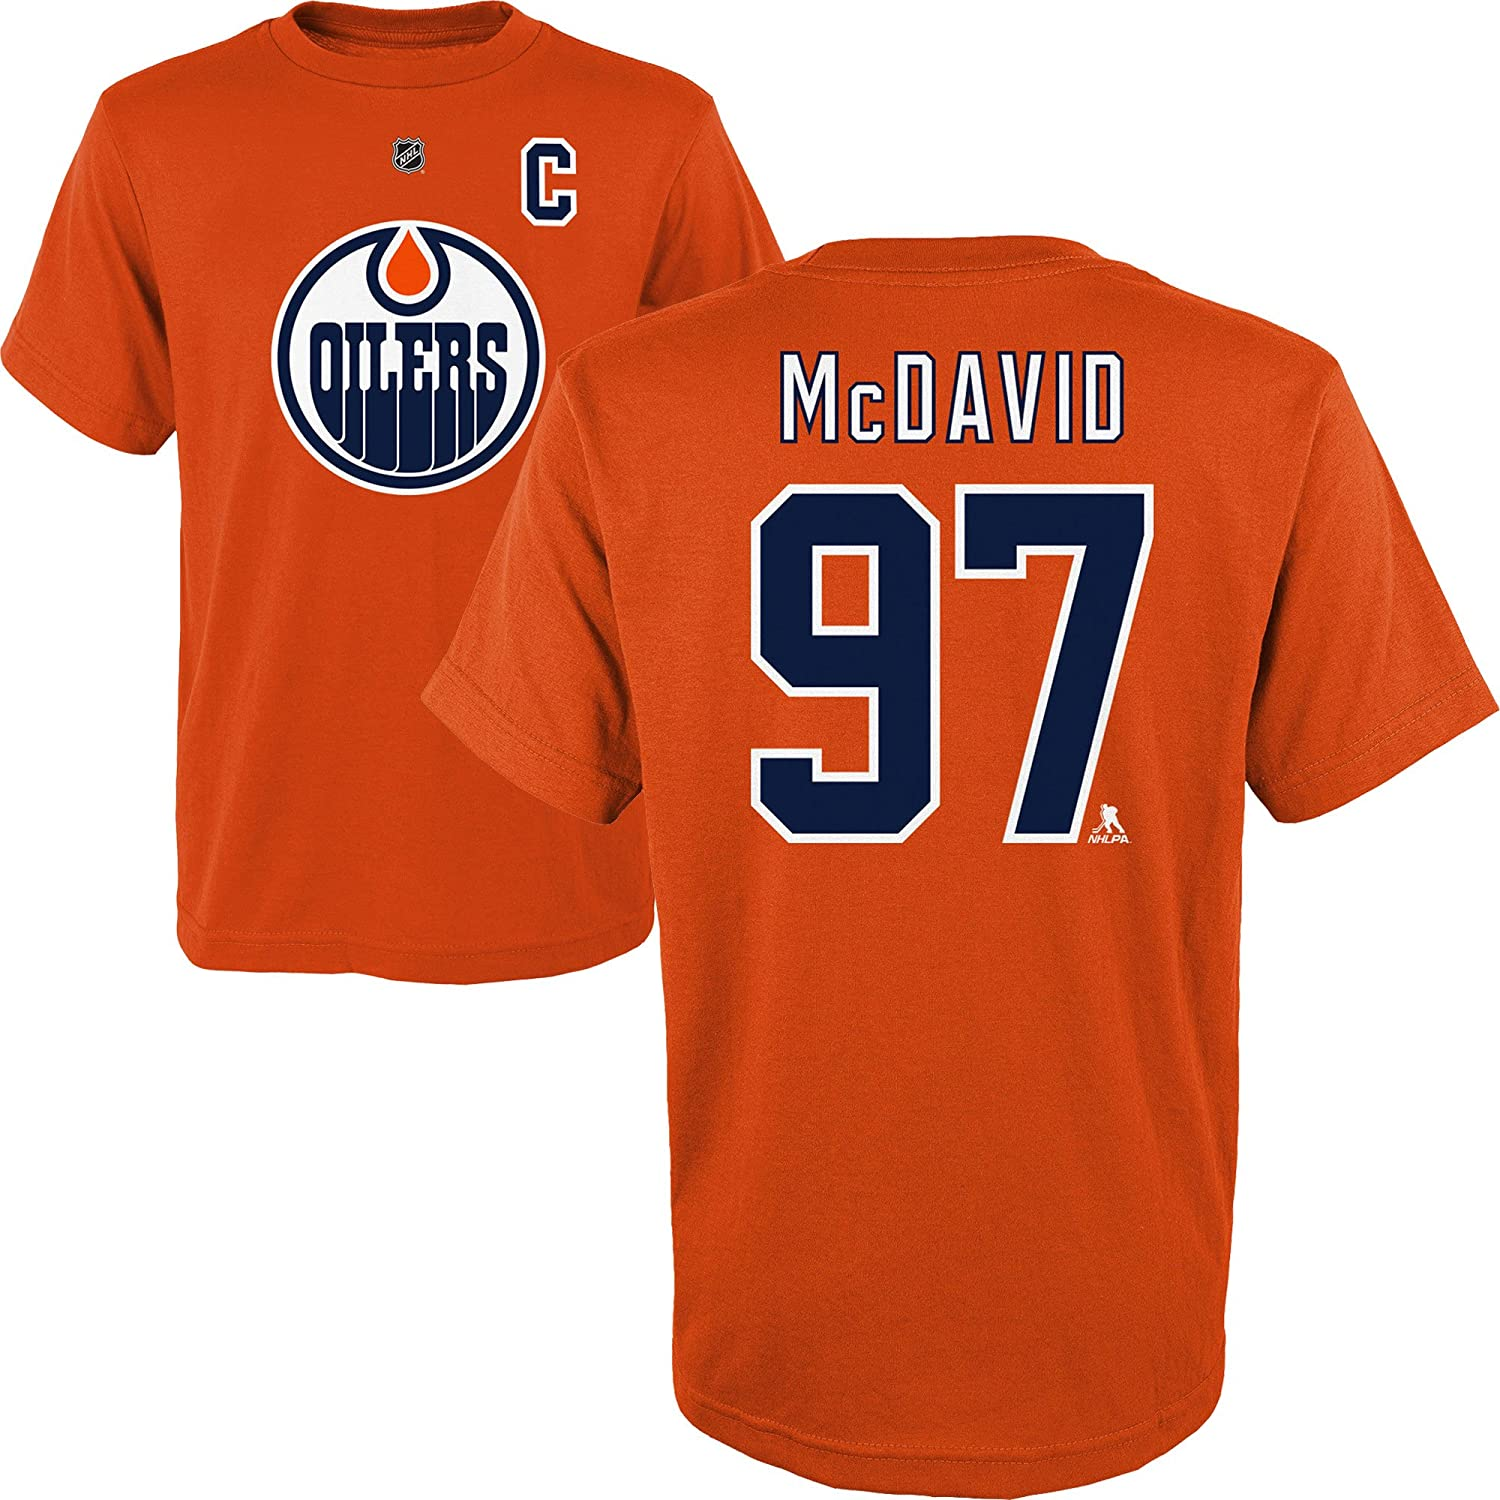 Connor McDavid Edmonton Oilers Youth Player Name and Number T-Shirt Outerstuff